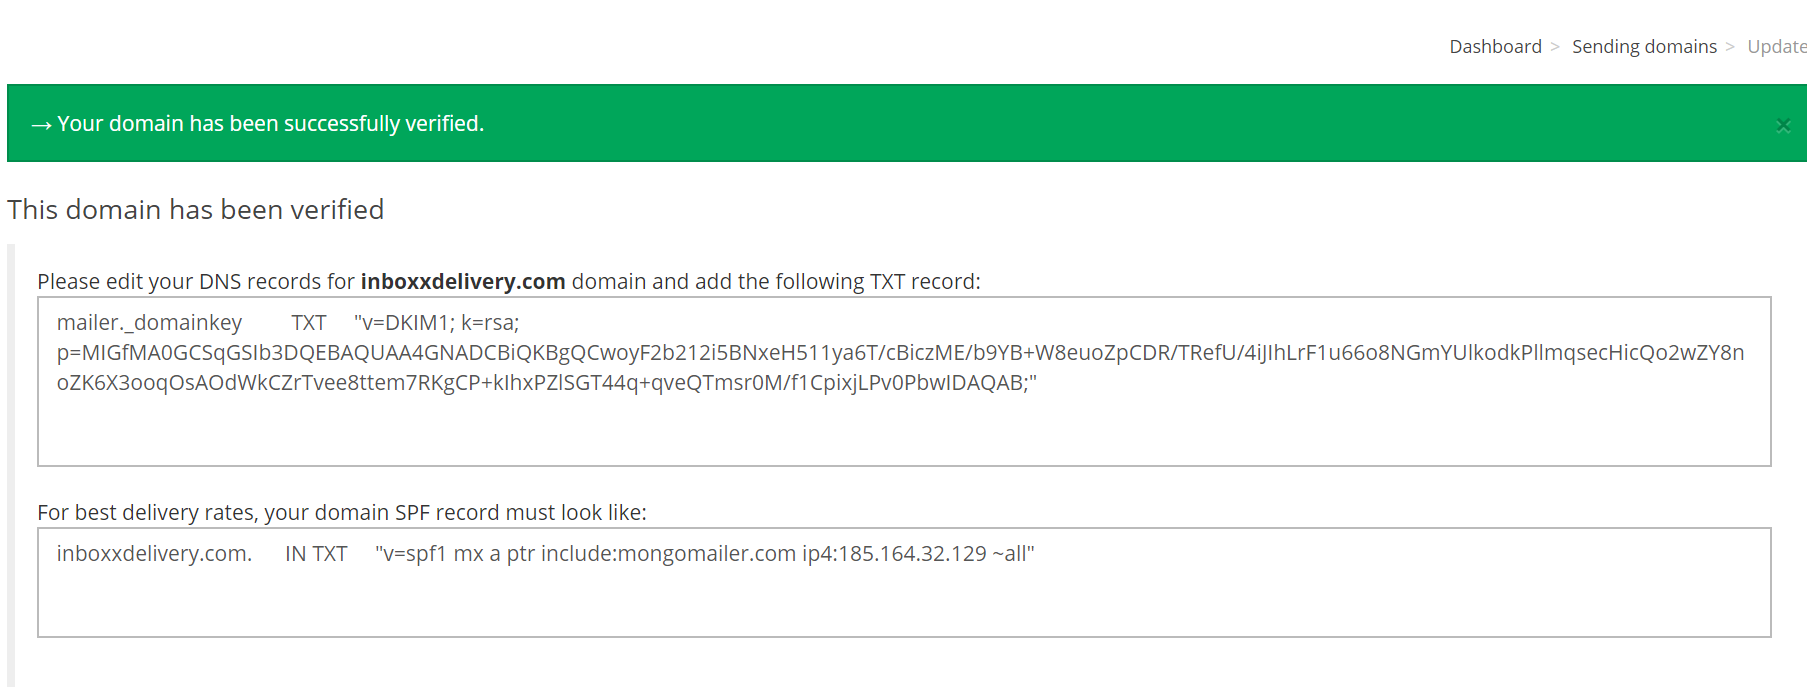 DNS verified Successfully